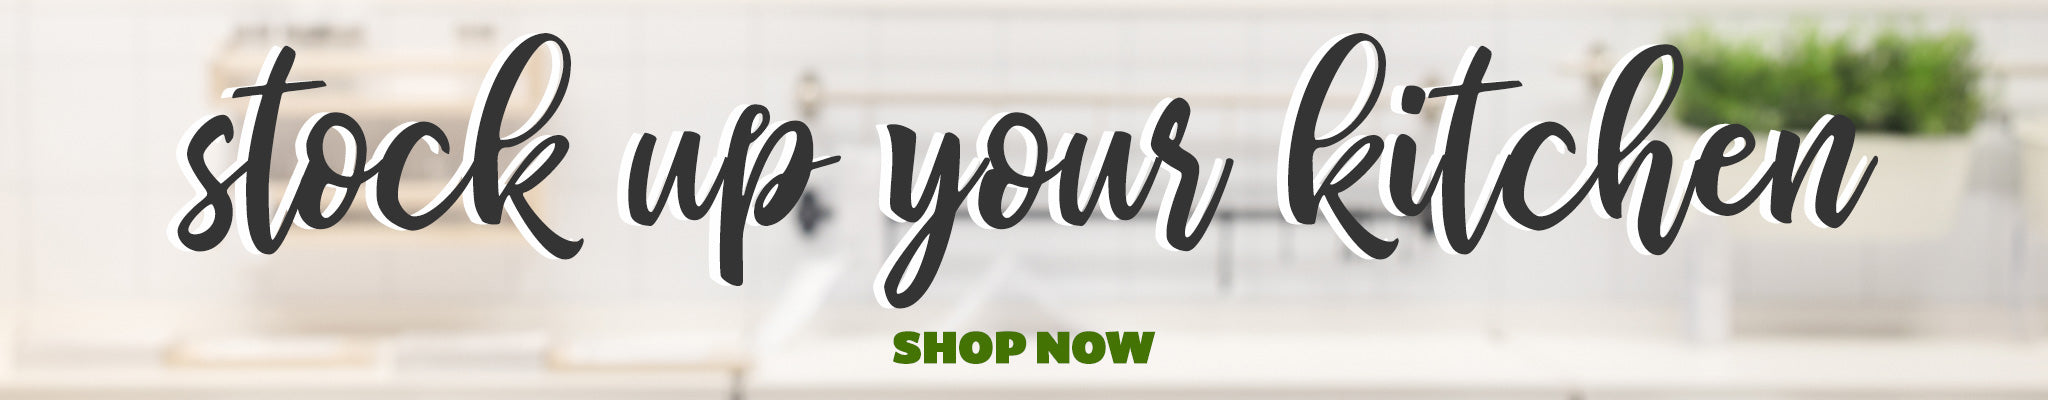 Stock Up Your Kitchen | Shop Now!